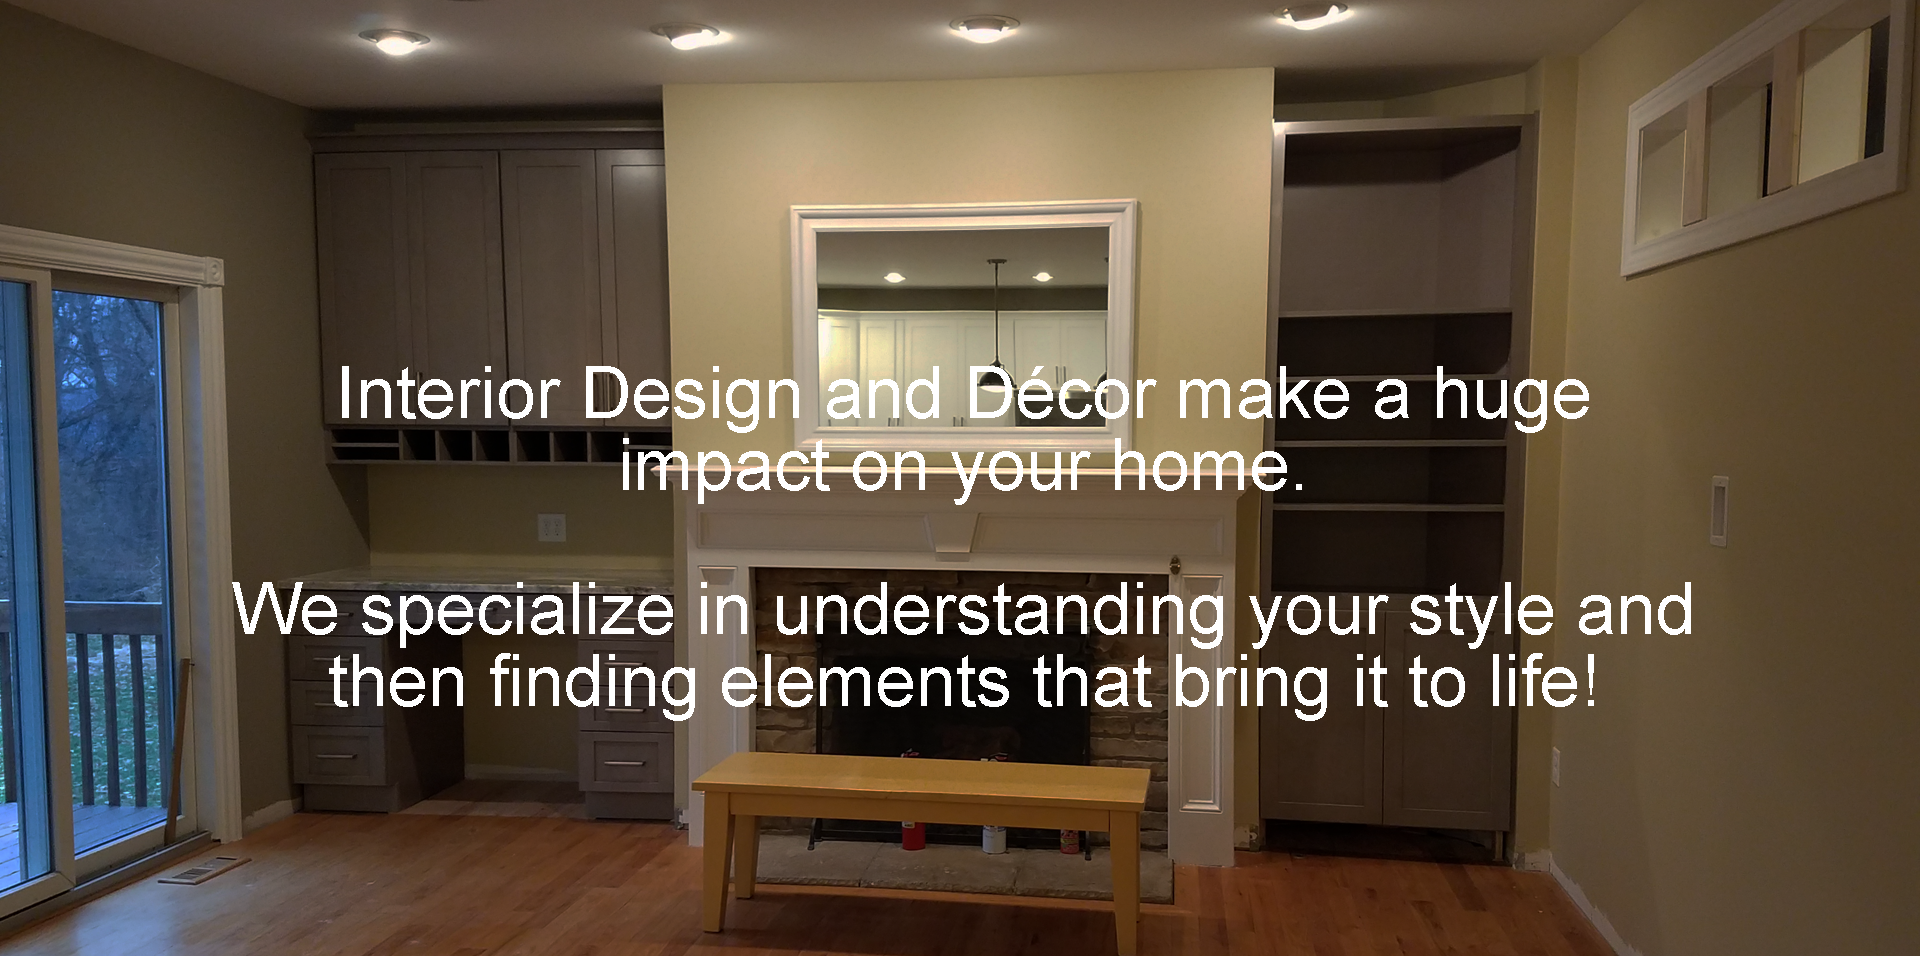 Interior Design and Décor make a huge impact on your home.